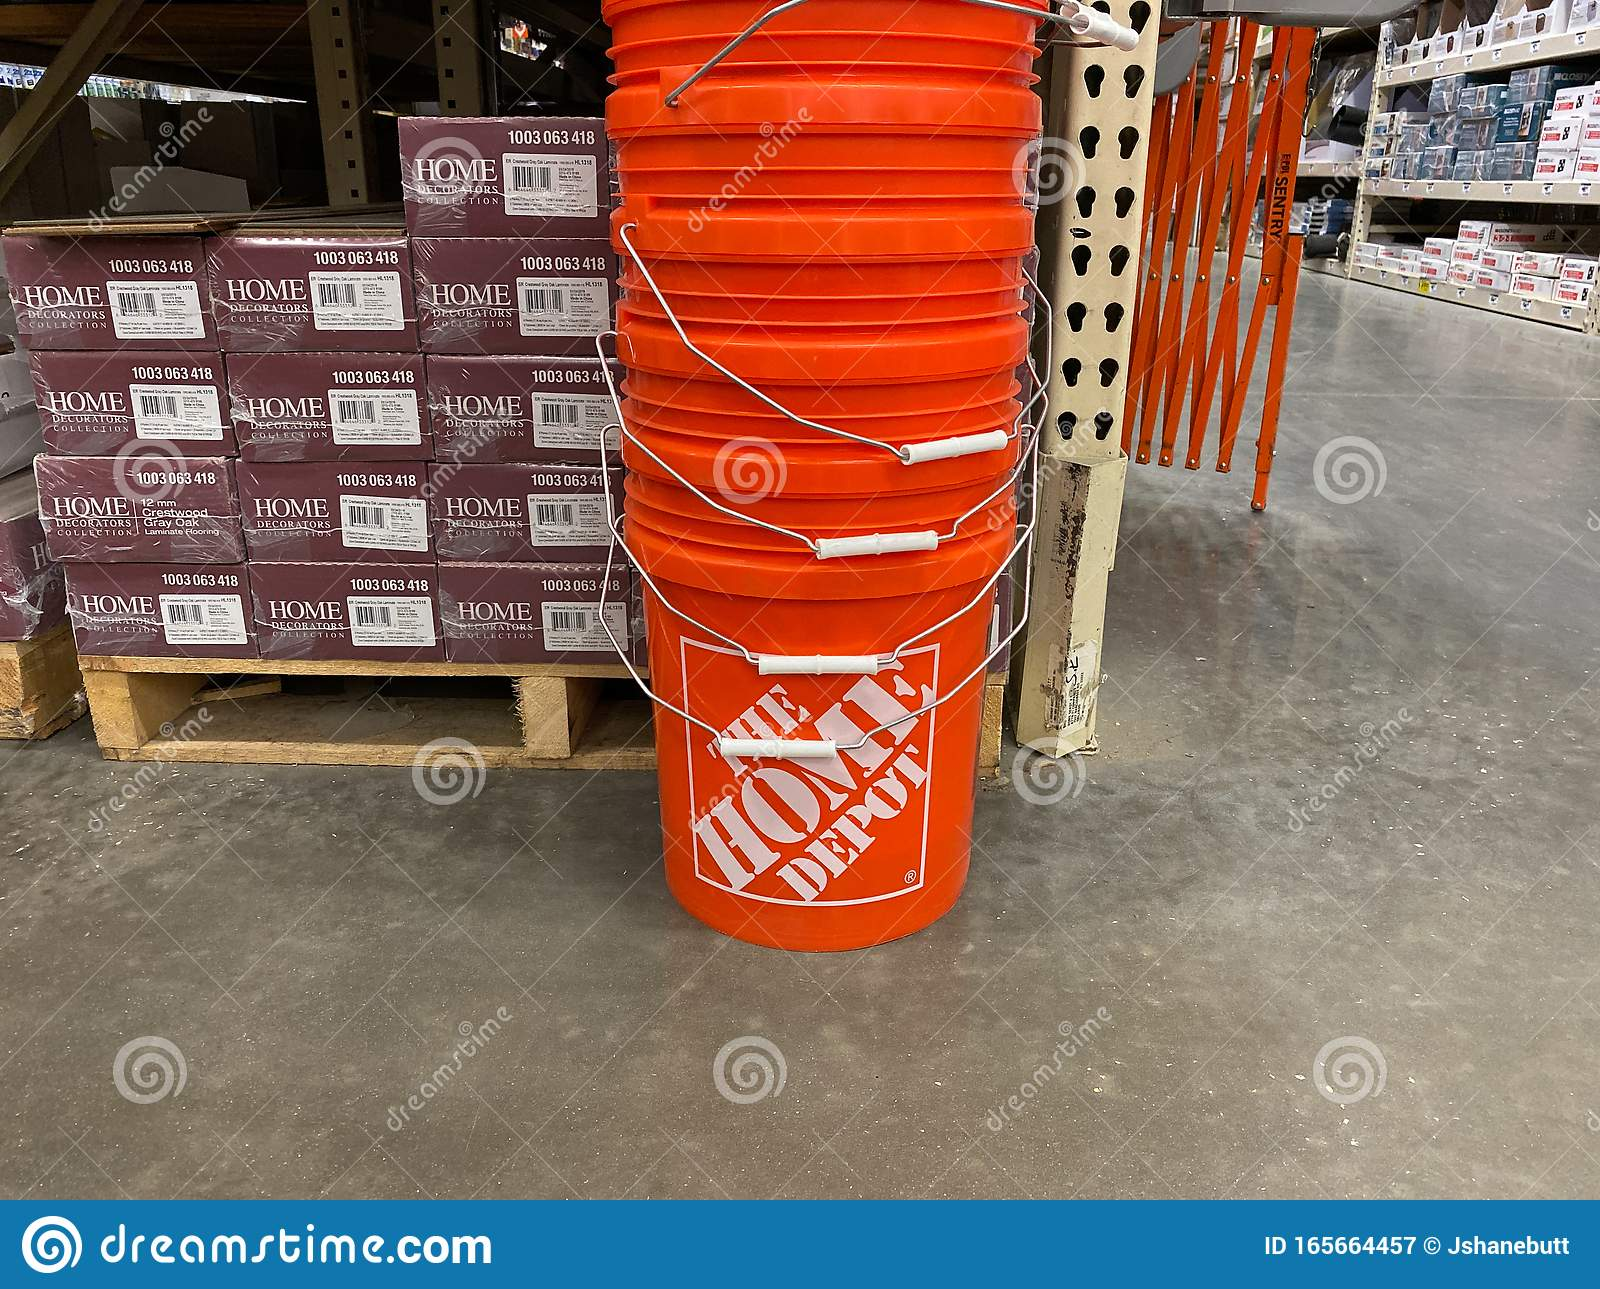 A Stack Of Orange Plastic Busckets Home Depot Home Improvement Store That Have The Company Logo On Them Editorial Photography Image Of Products Equipment 165664457